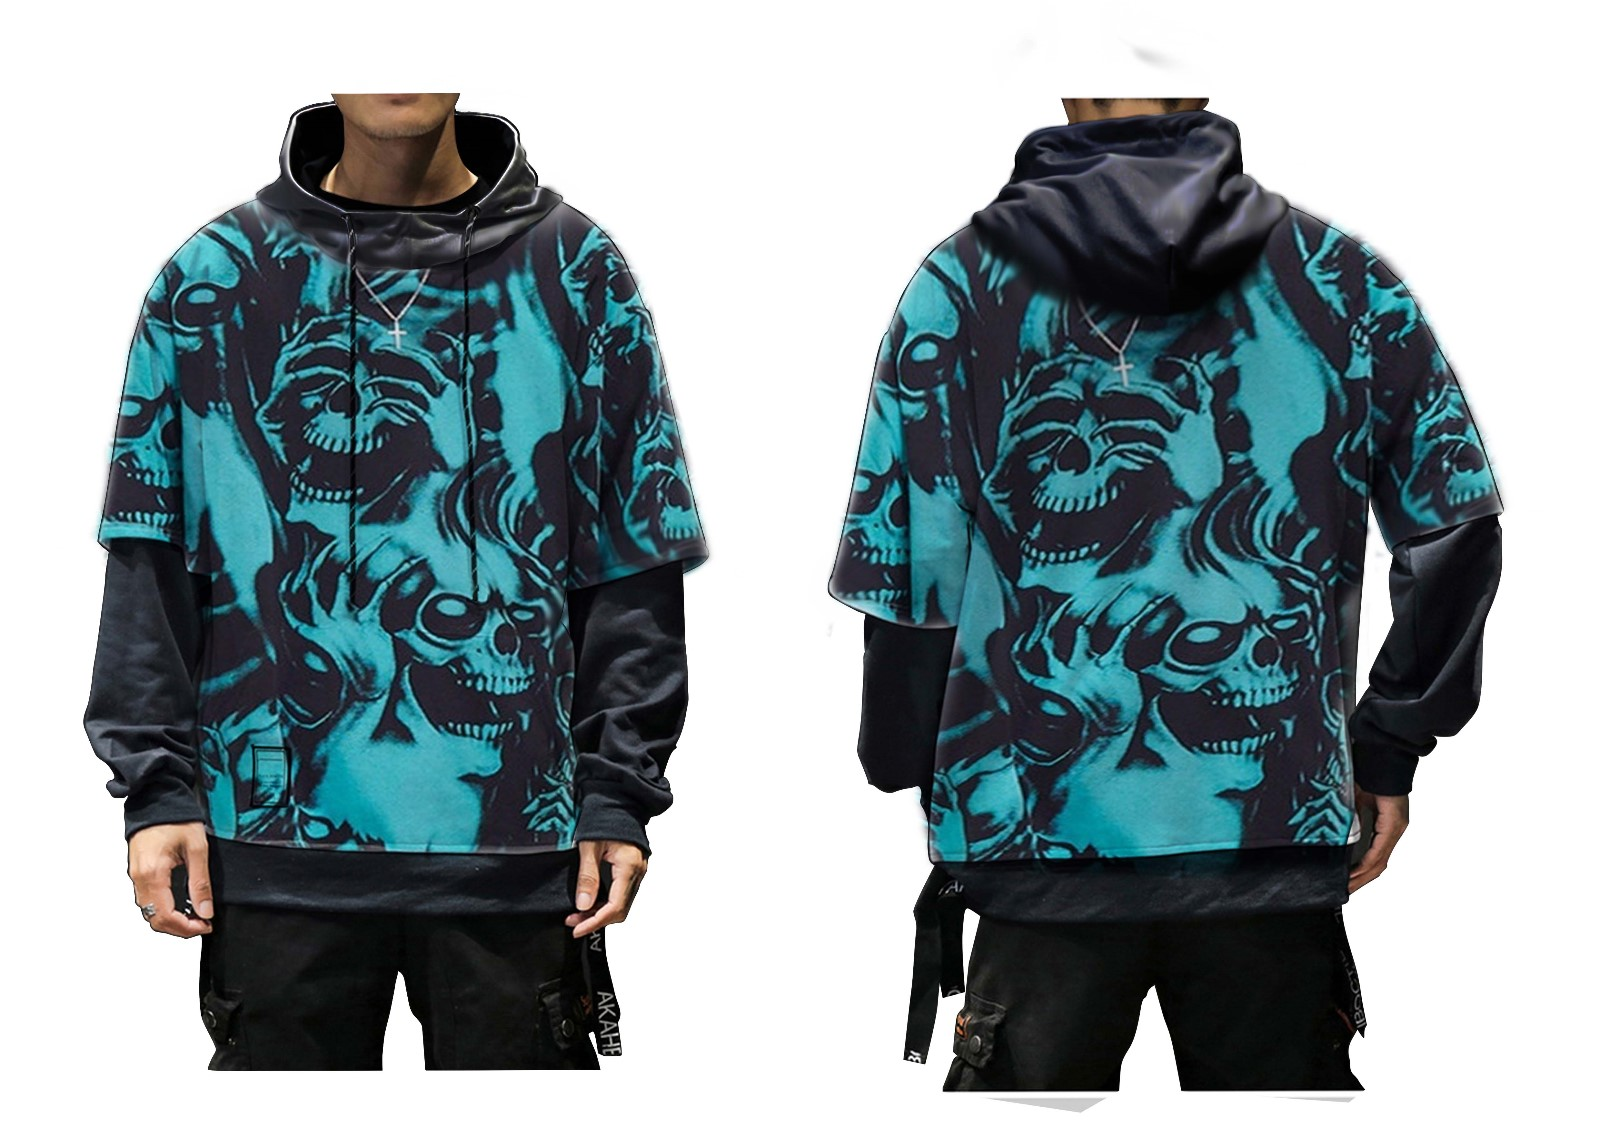 ZOGAA Causal Print Hooded Sportswear Fake 2 Pcs Blue Color Short Sleeve Hoodies S-3XL